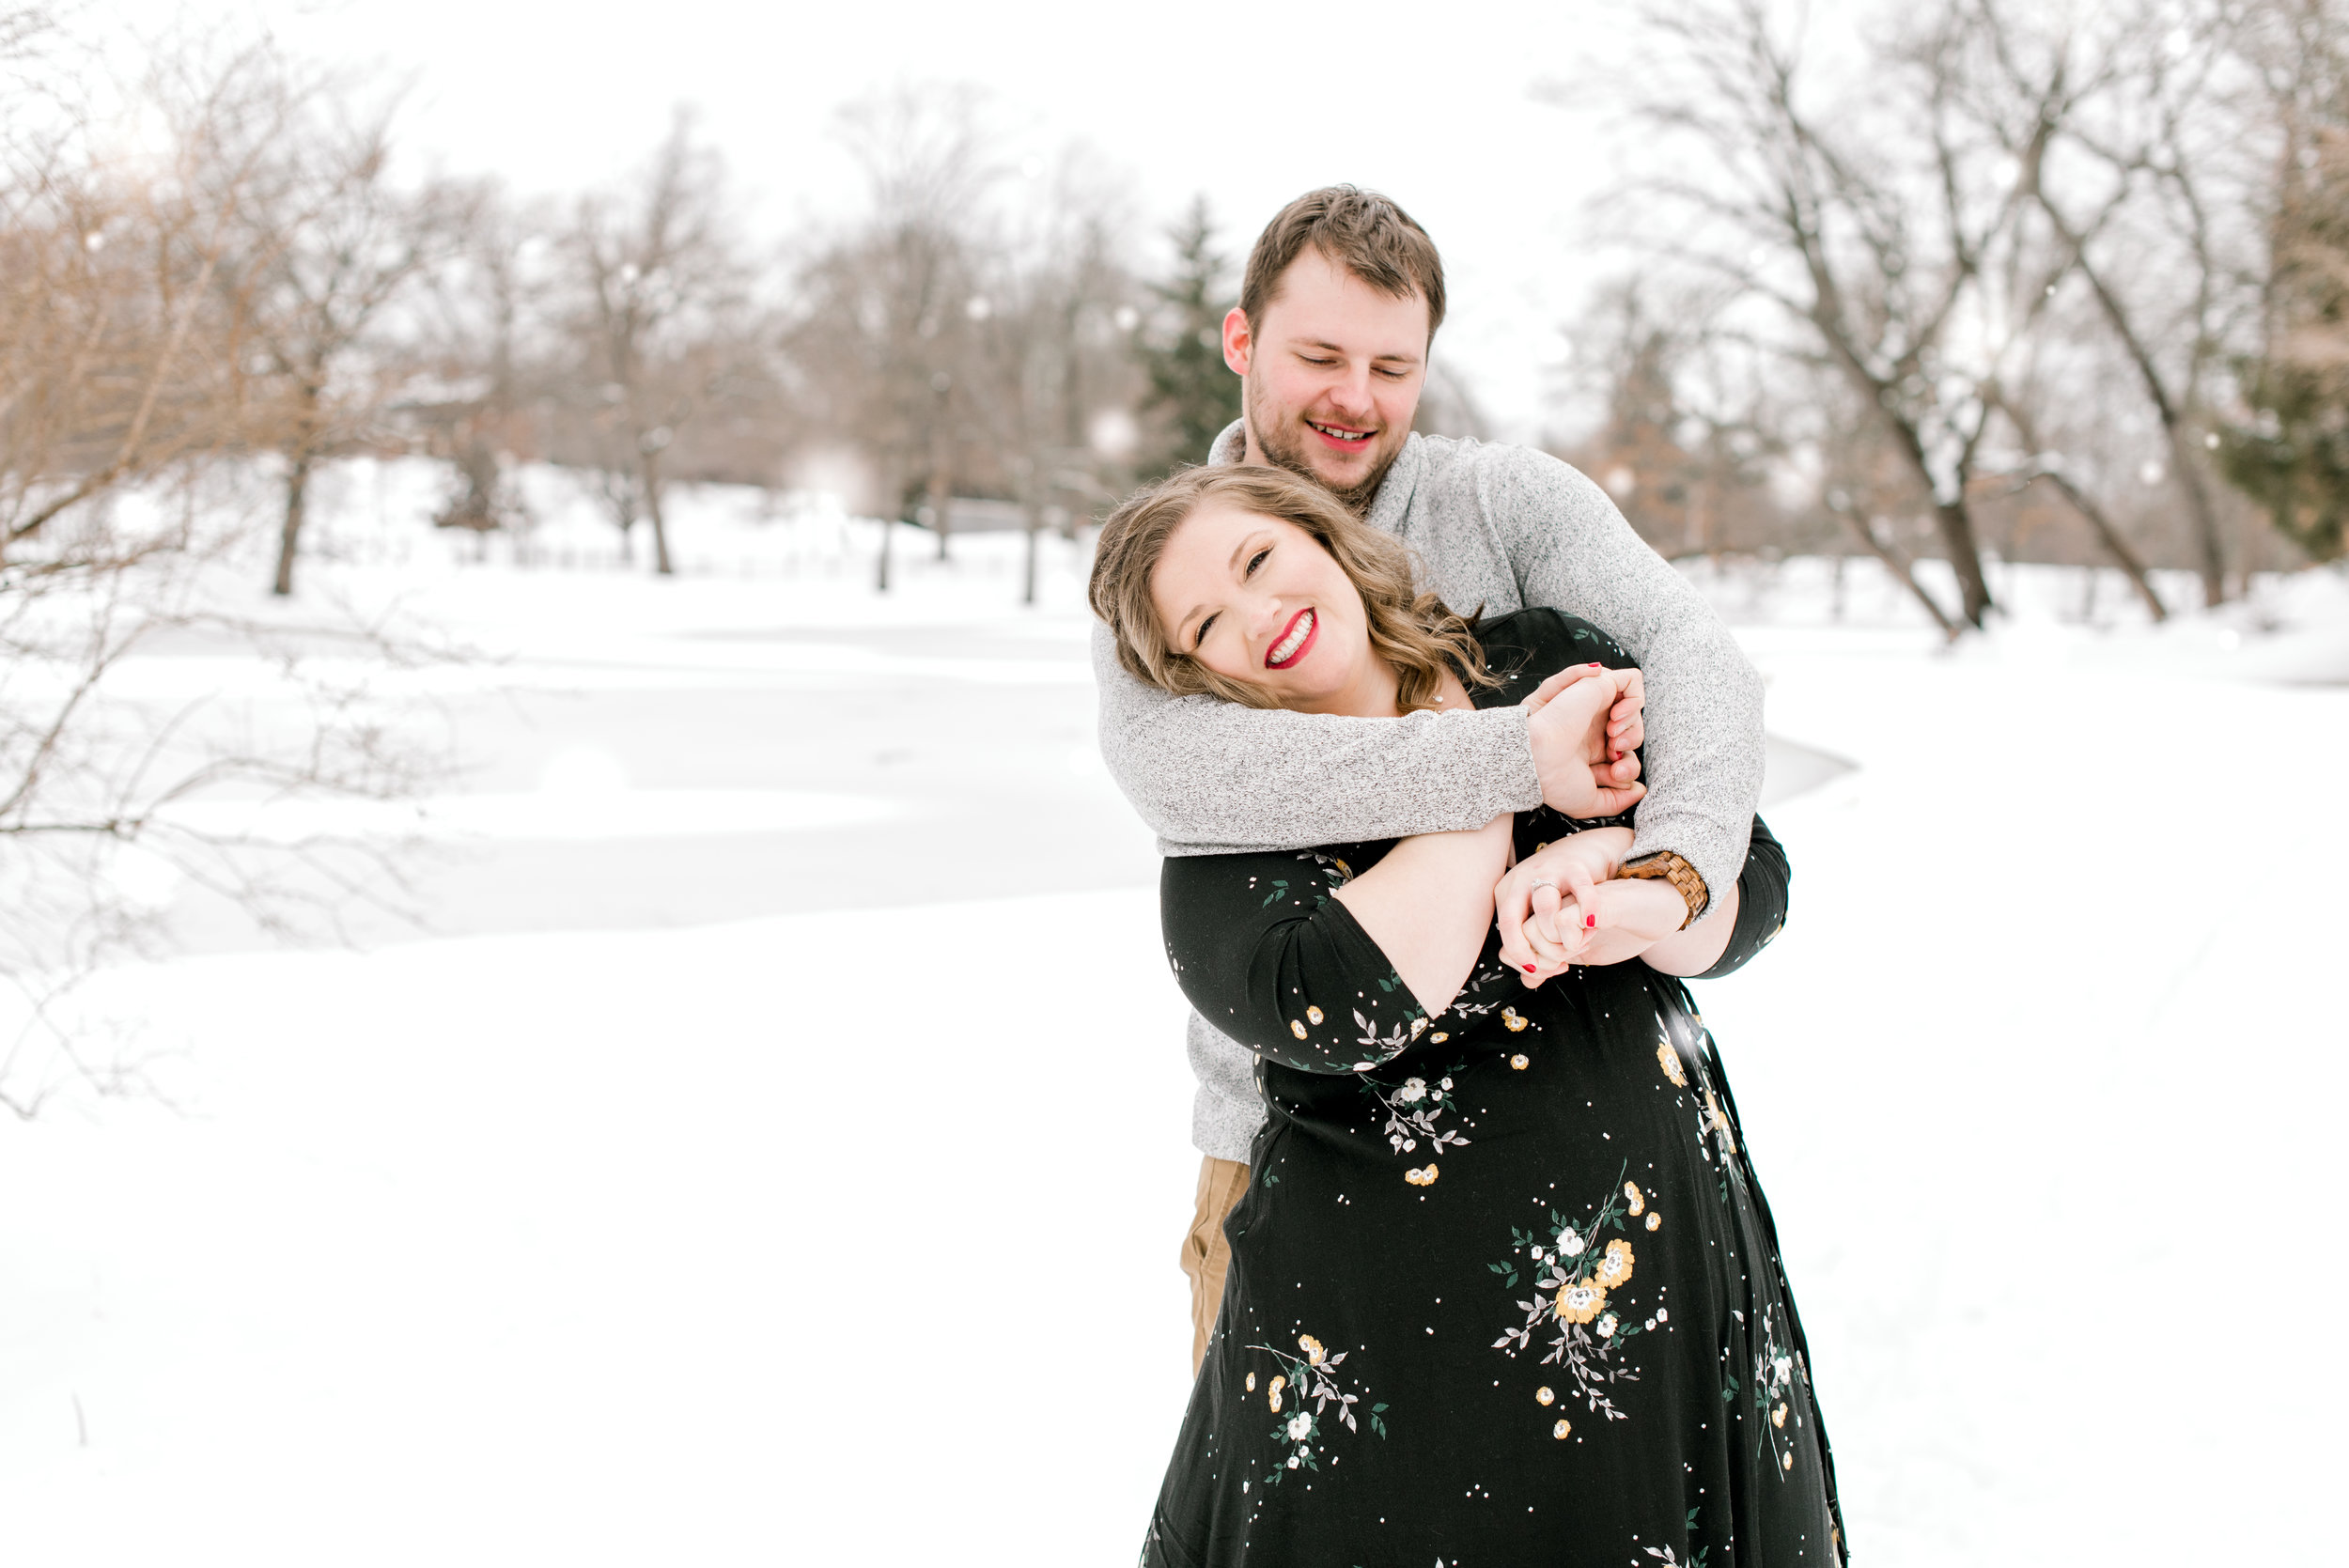 1march2019-roger-williams-park-snow-engagement-session-10.jpg